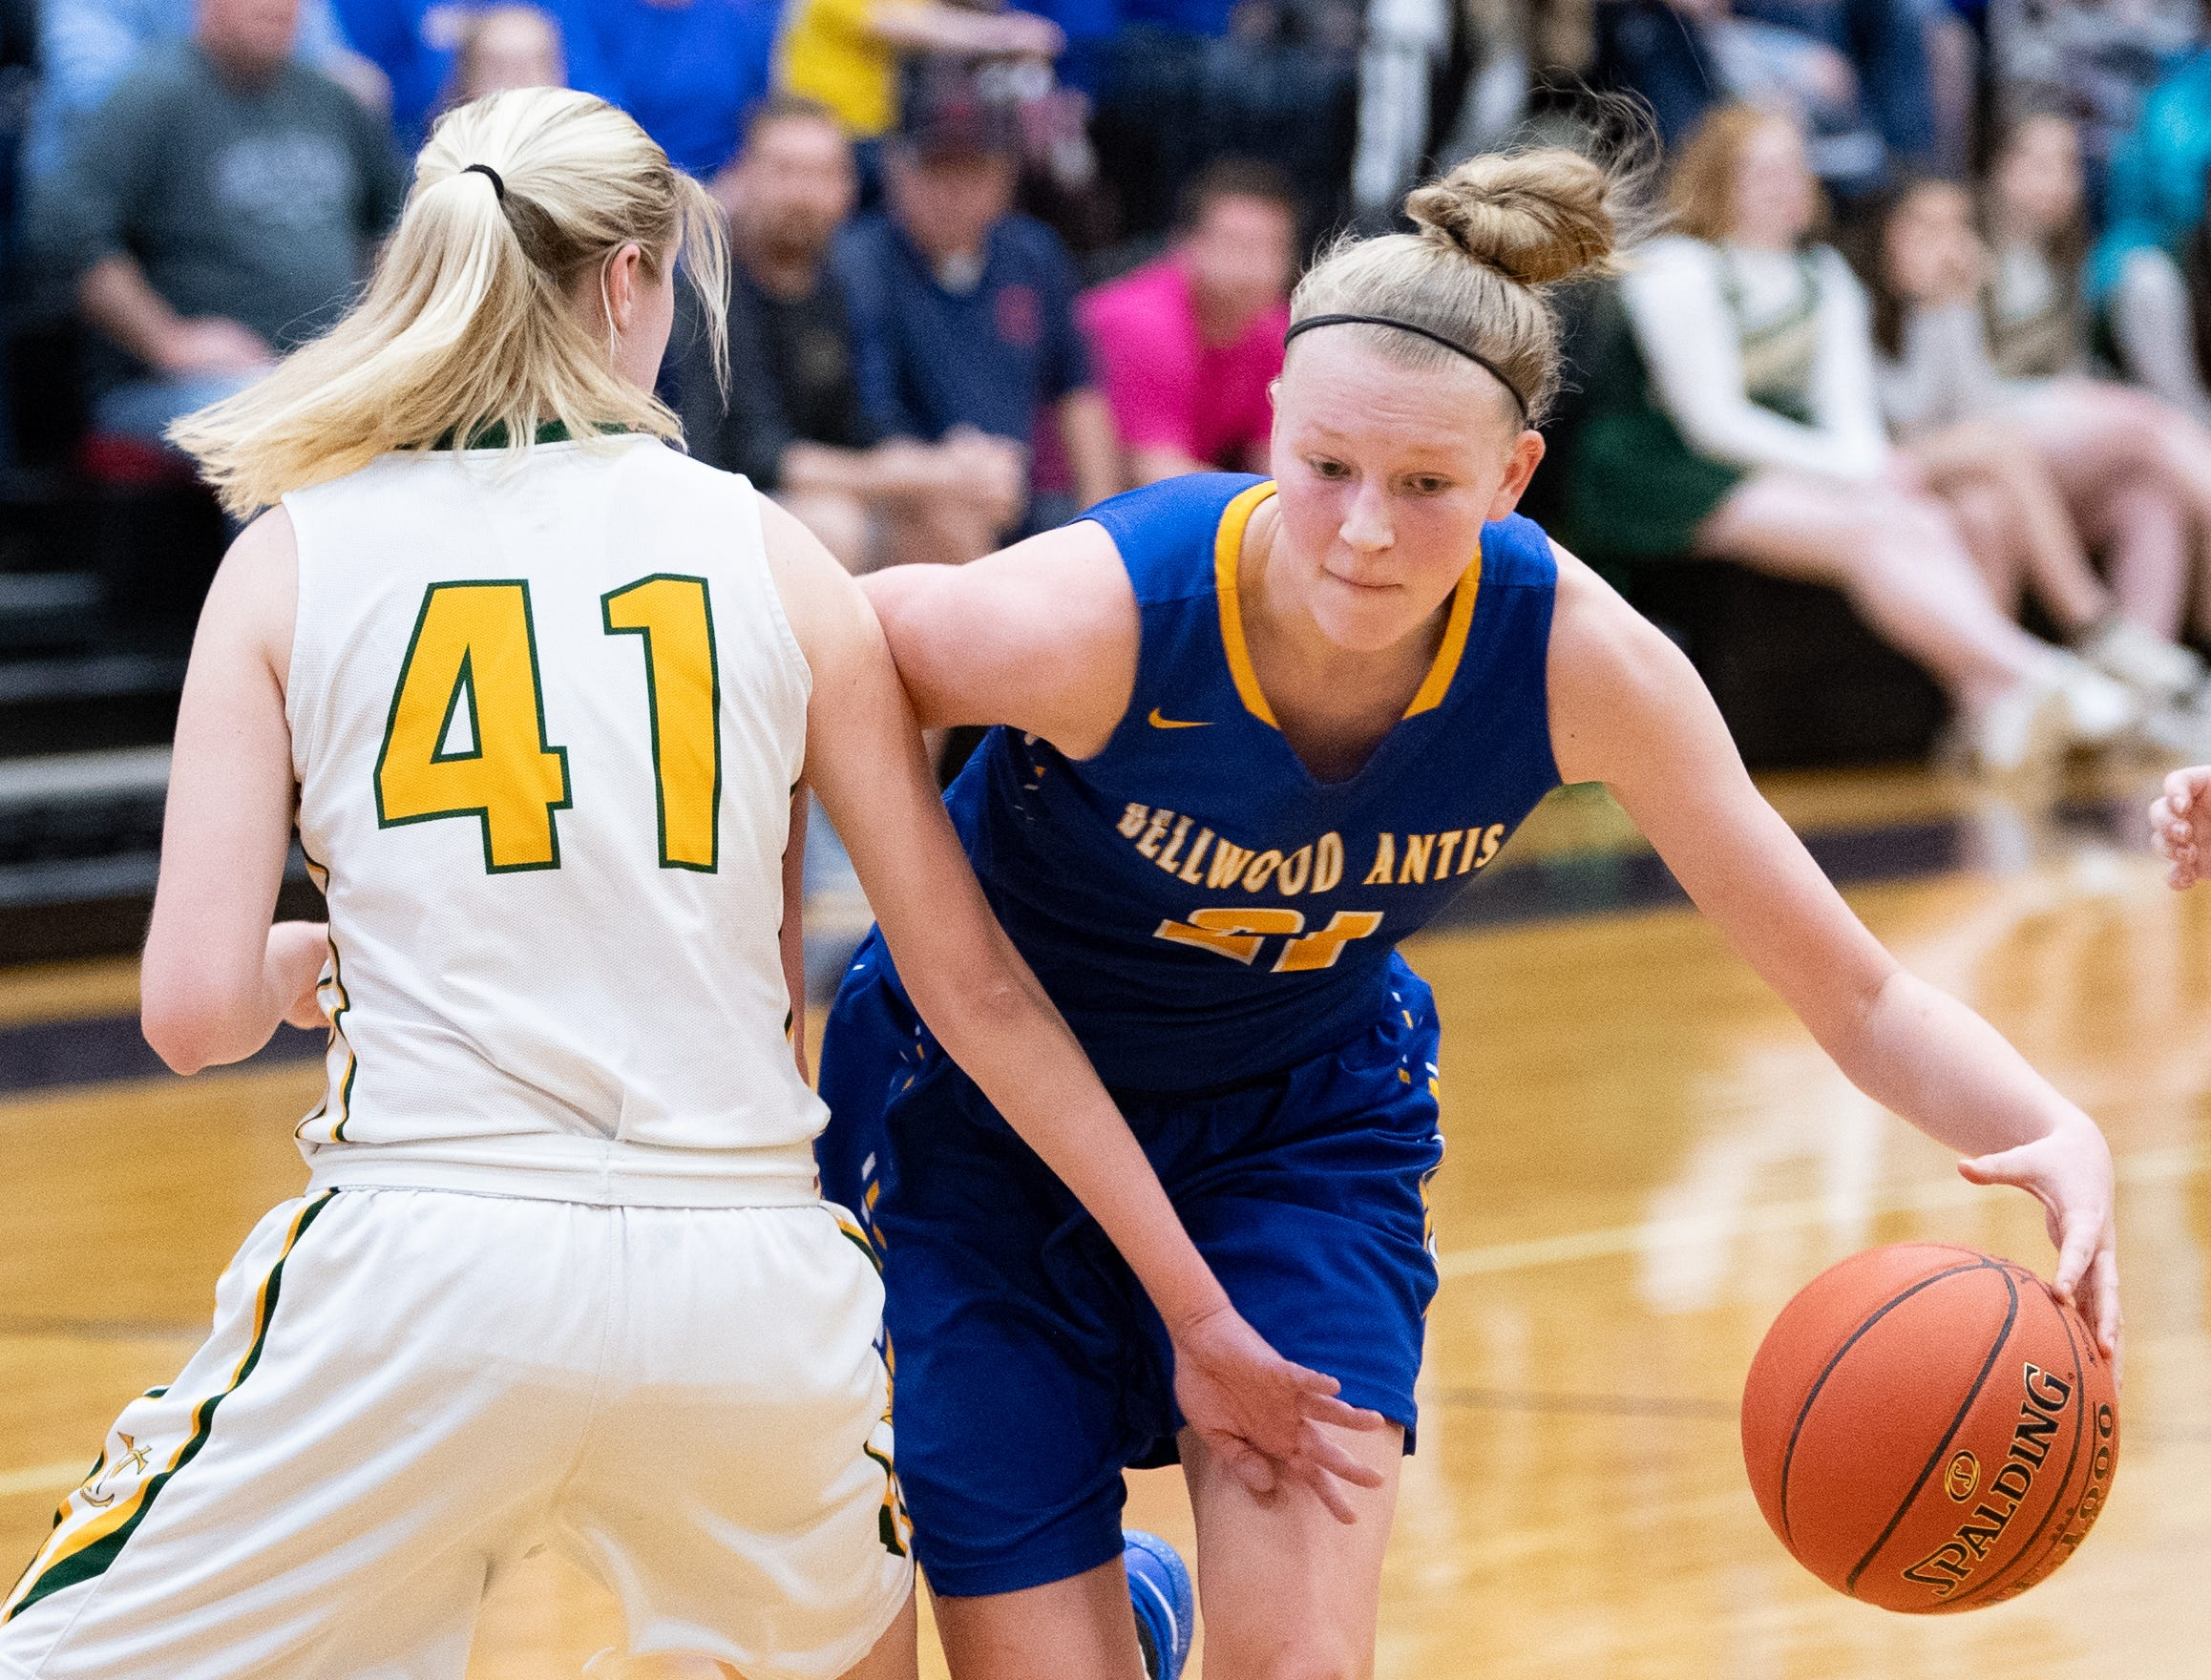 Alli Campbell (21) tries to get past the defense during the PIAA girls' basketball game between York Catholic and Bellwood-Antis, March 15, 2019 at Mifflin County High School. The Fighting Irish lost to the Lady Blue Devils 53 to 47.